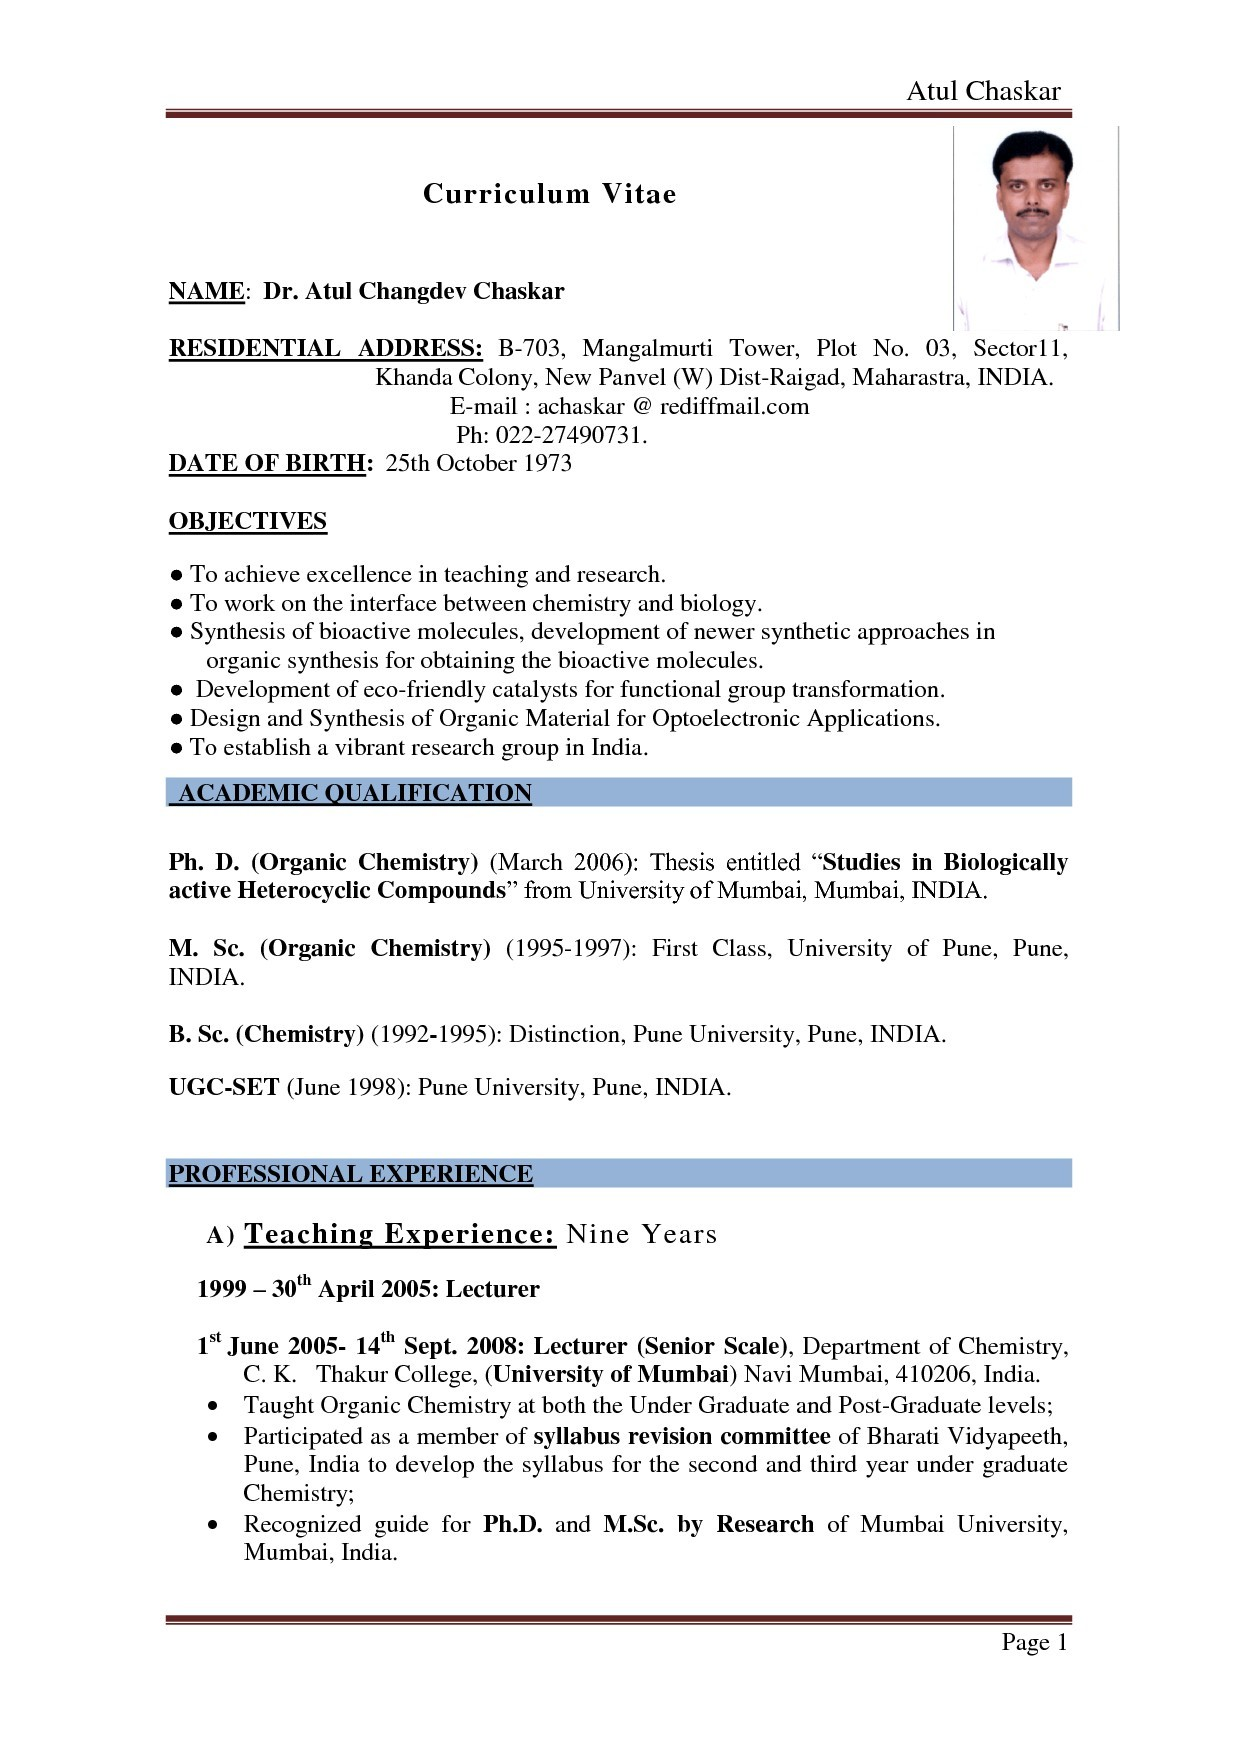 English Teacher Cv Sample Pdf Luxus Resume For Teachers Without Experience Unique Math Of